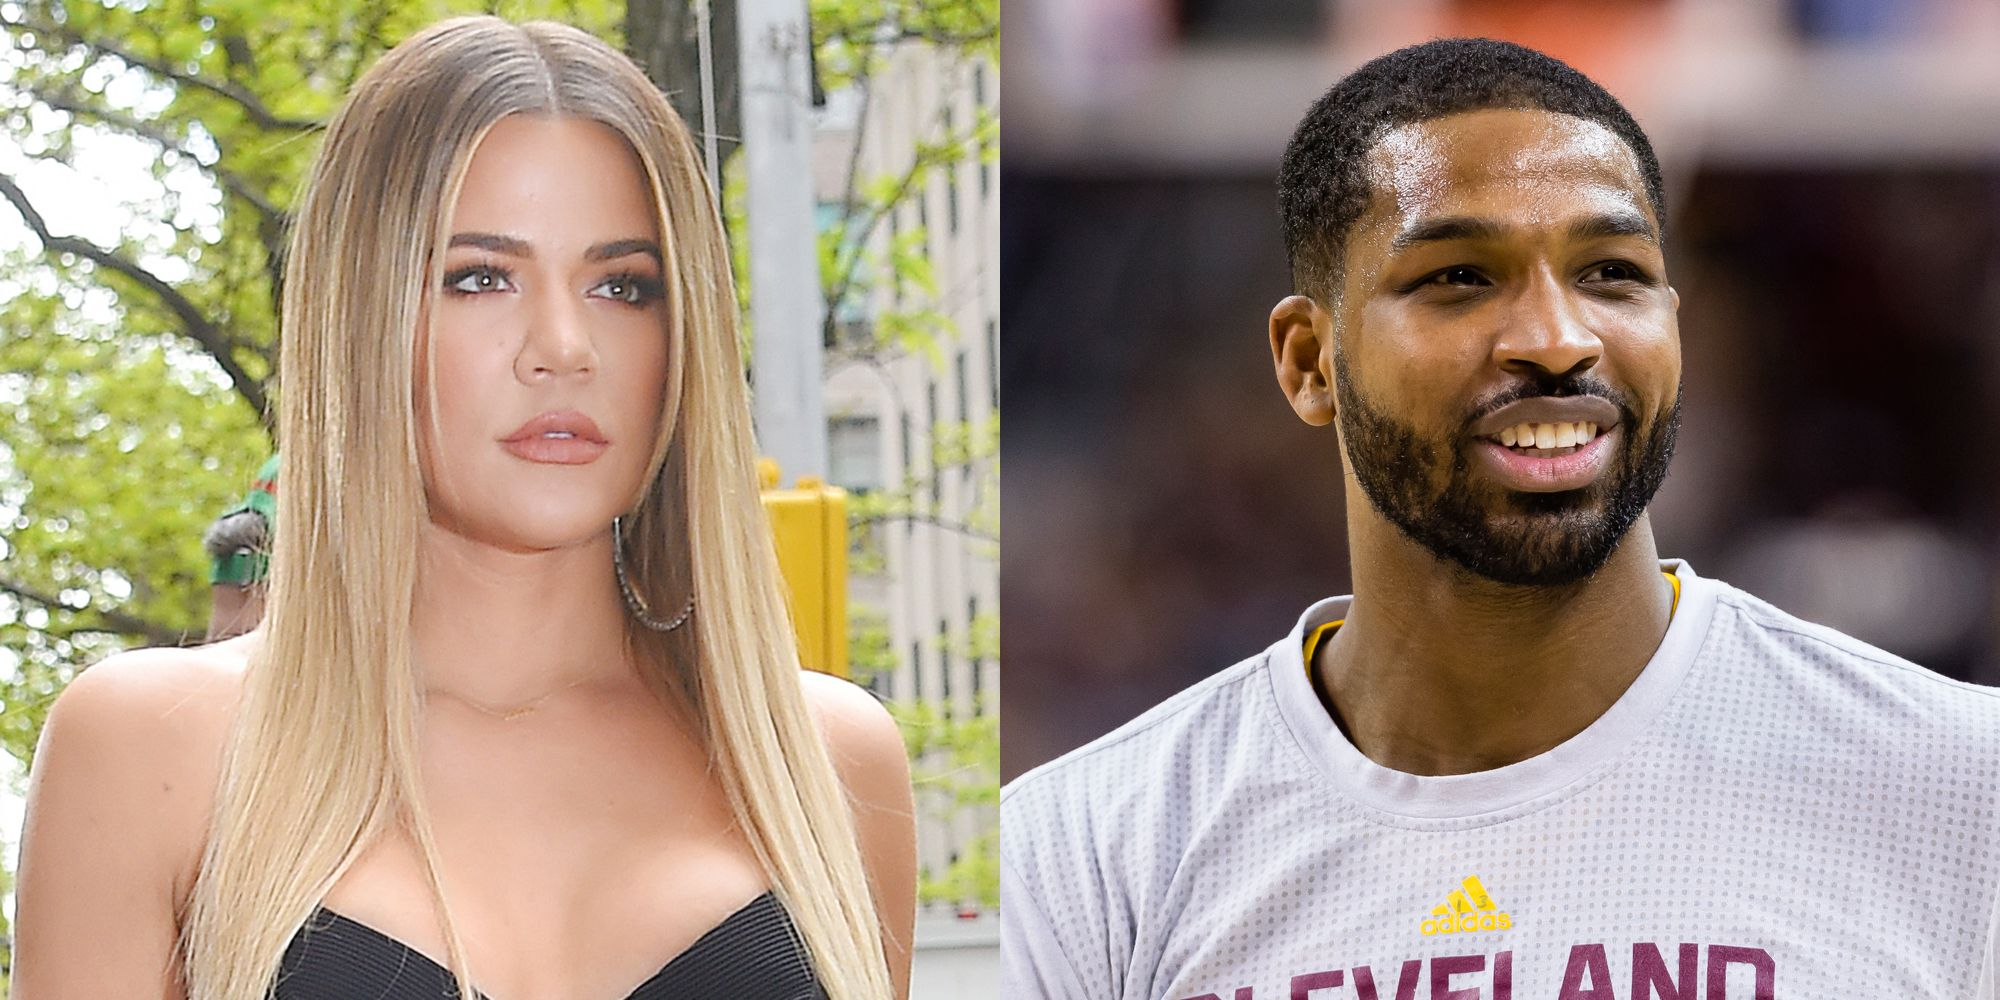 Khloe Kardashian Throws The Ultimate Shade At Tristan Thompson Following True Thompson's Birthday - People Tell Her To Drop The Subliminal Messages Because He Doesn't Care